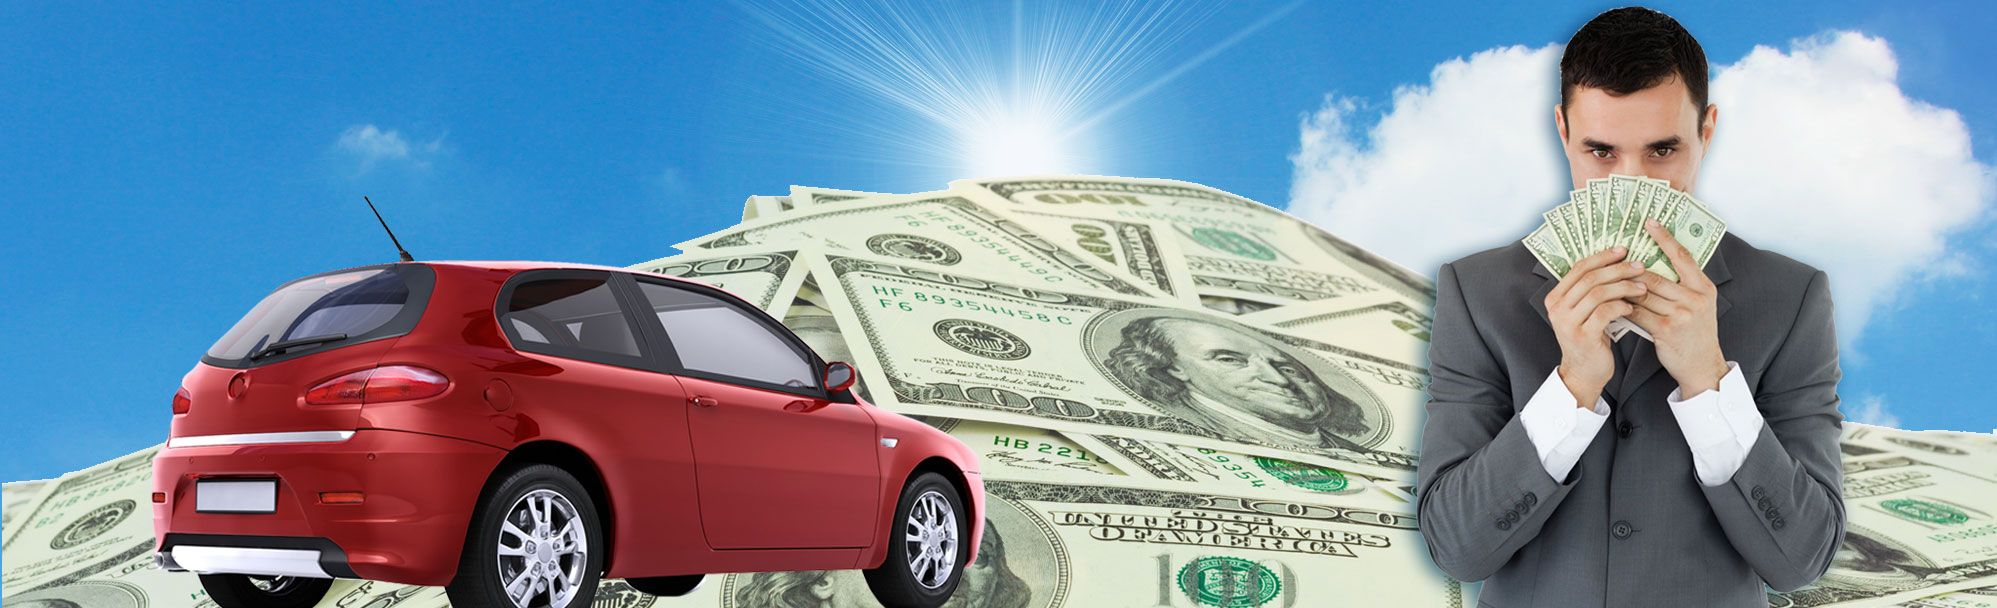 Fastcashtitleloans are the experts in bad credit car